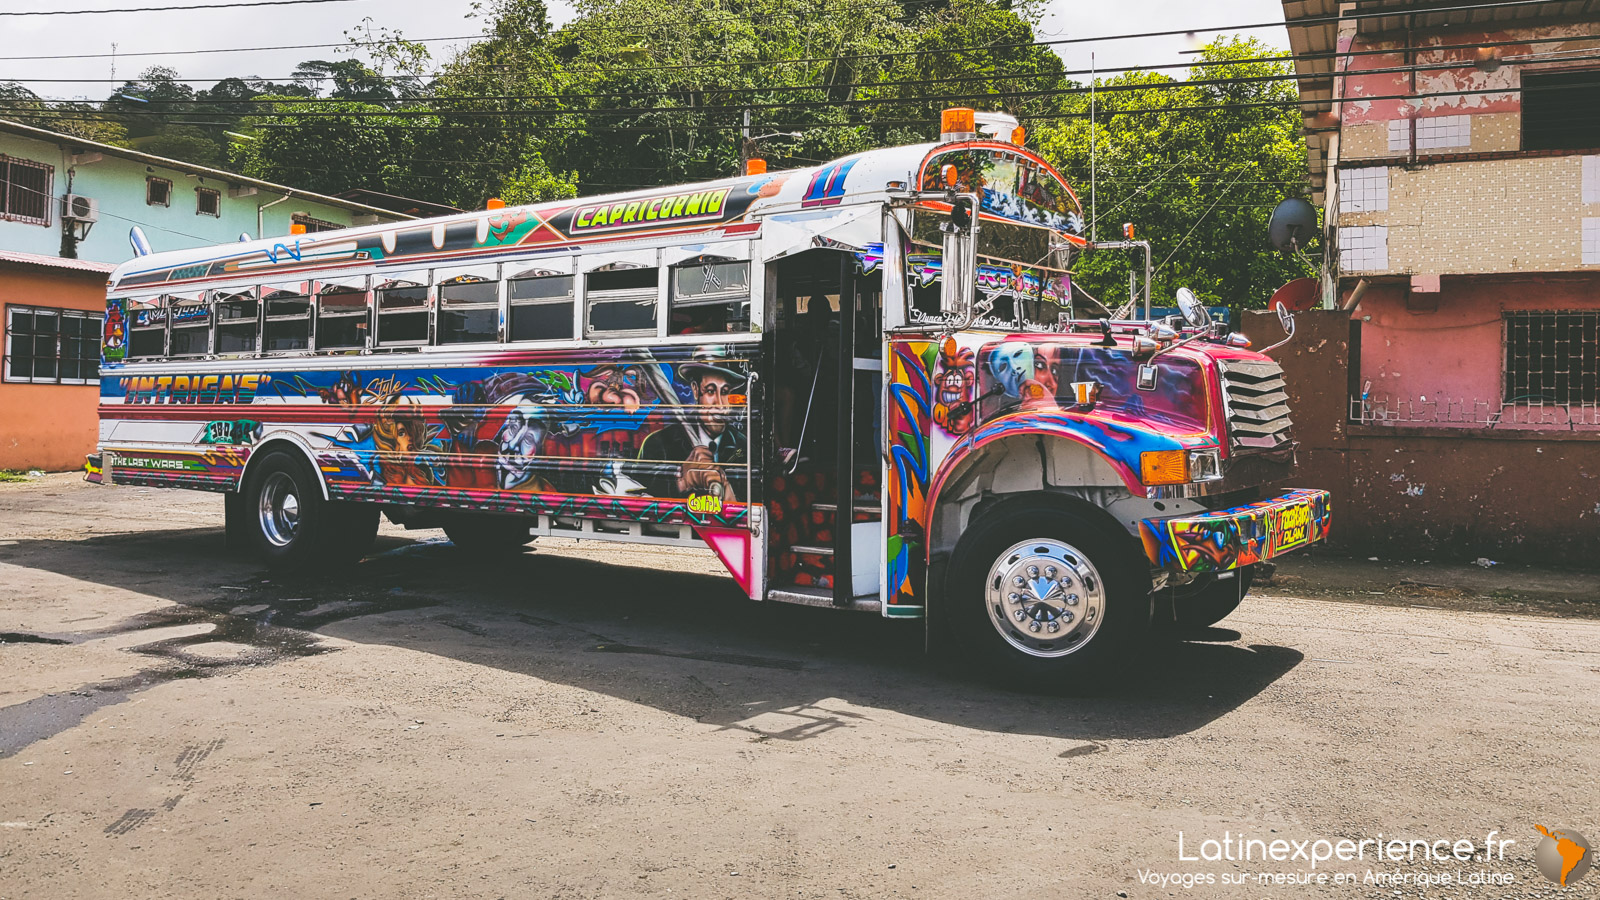 panama - Colon - Bus -Latinexperience voyages